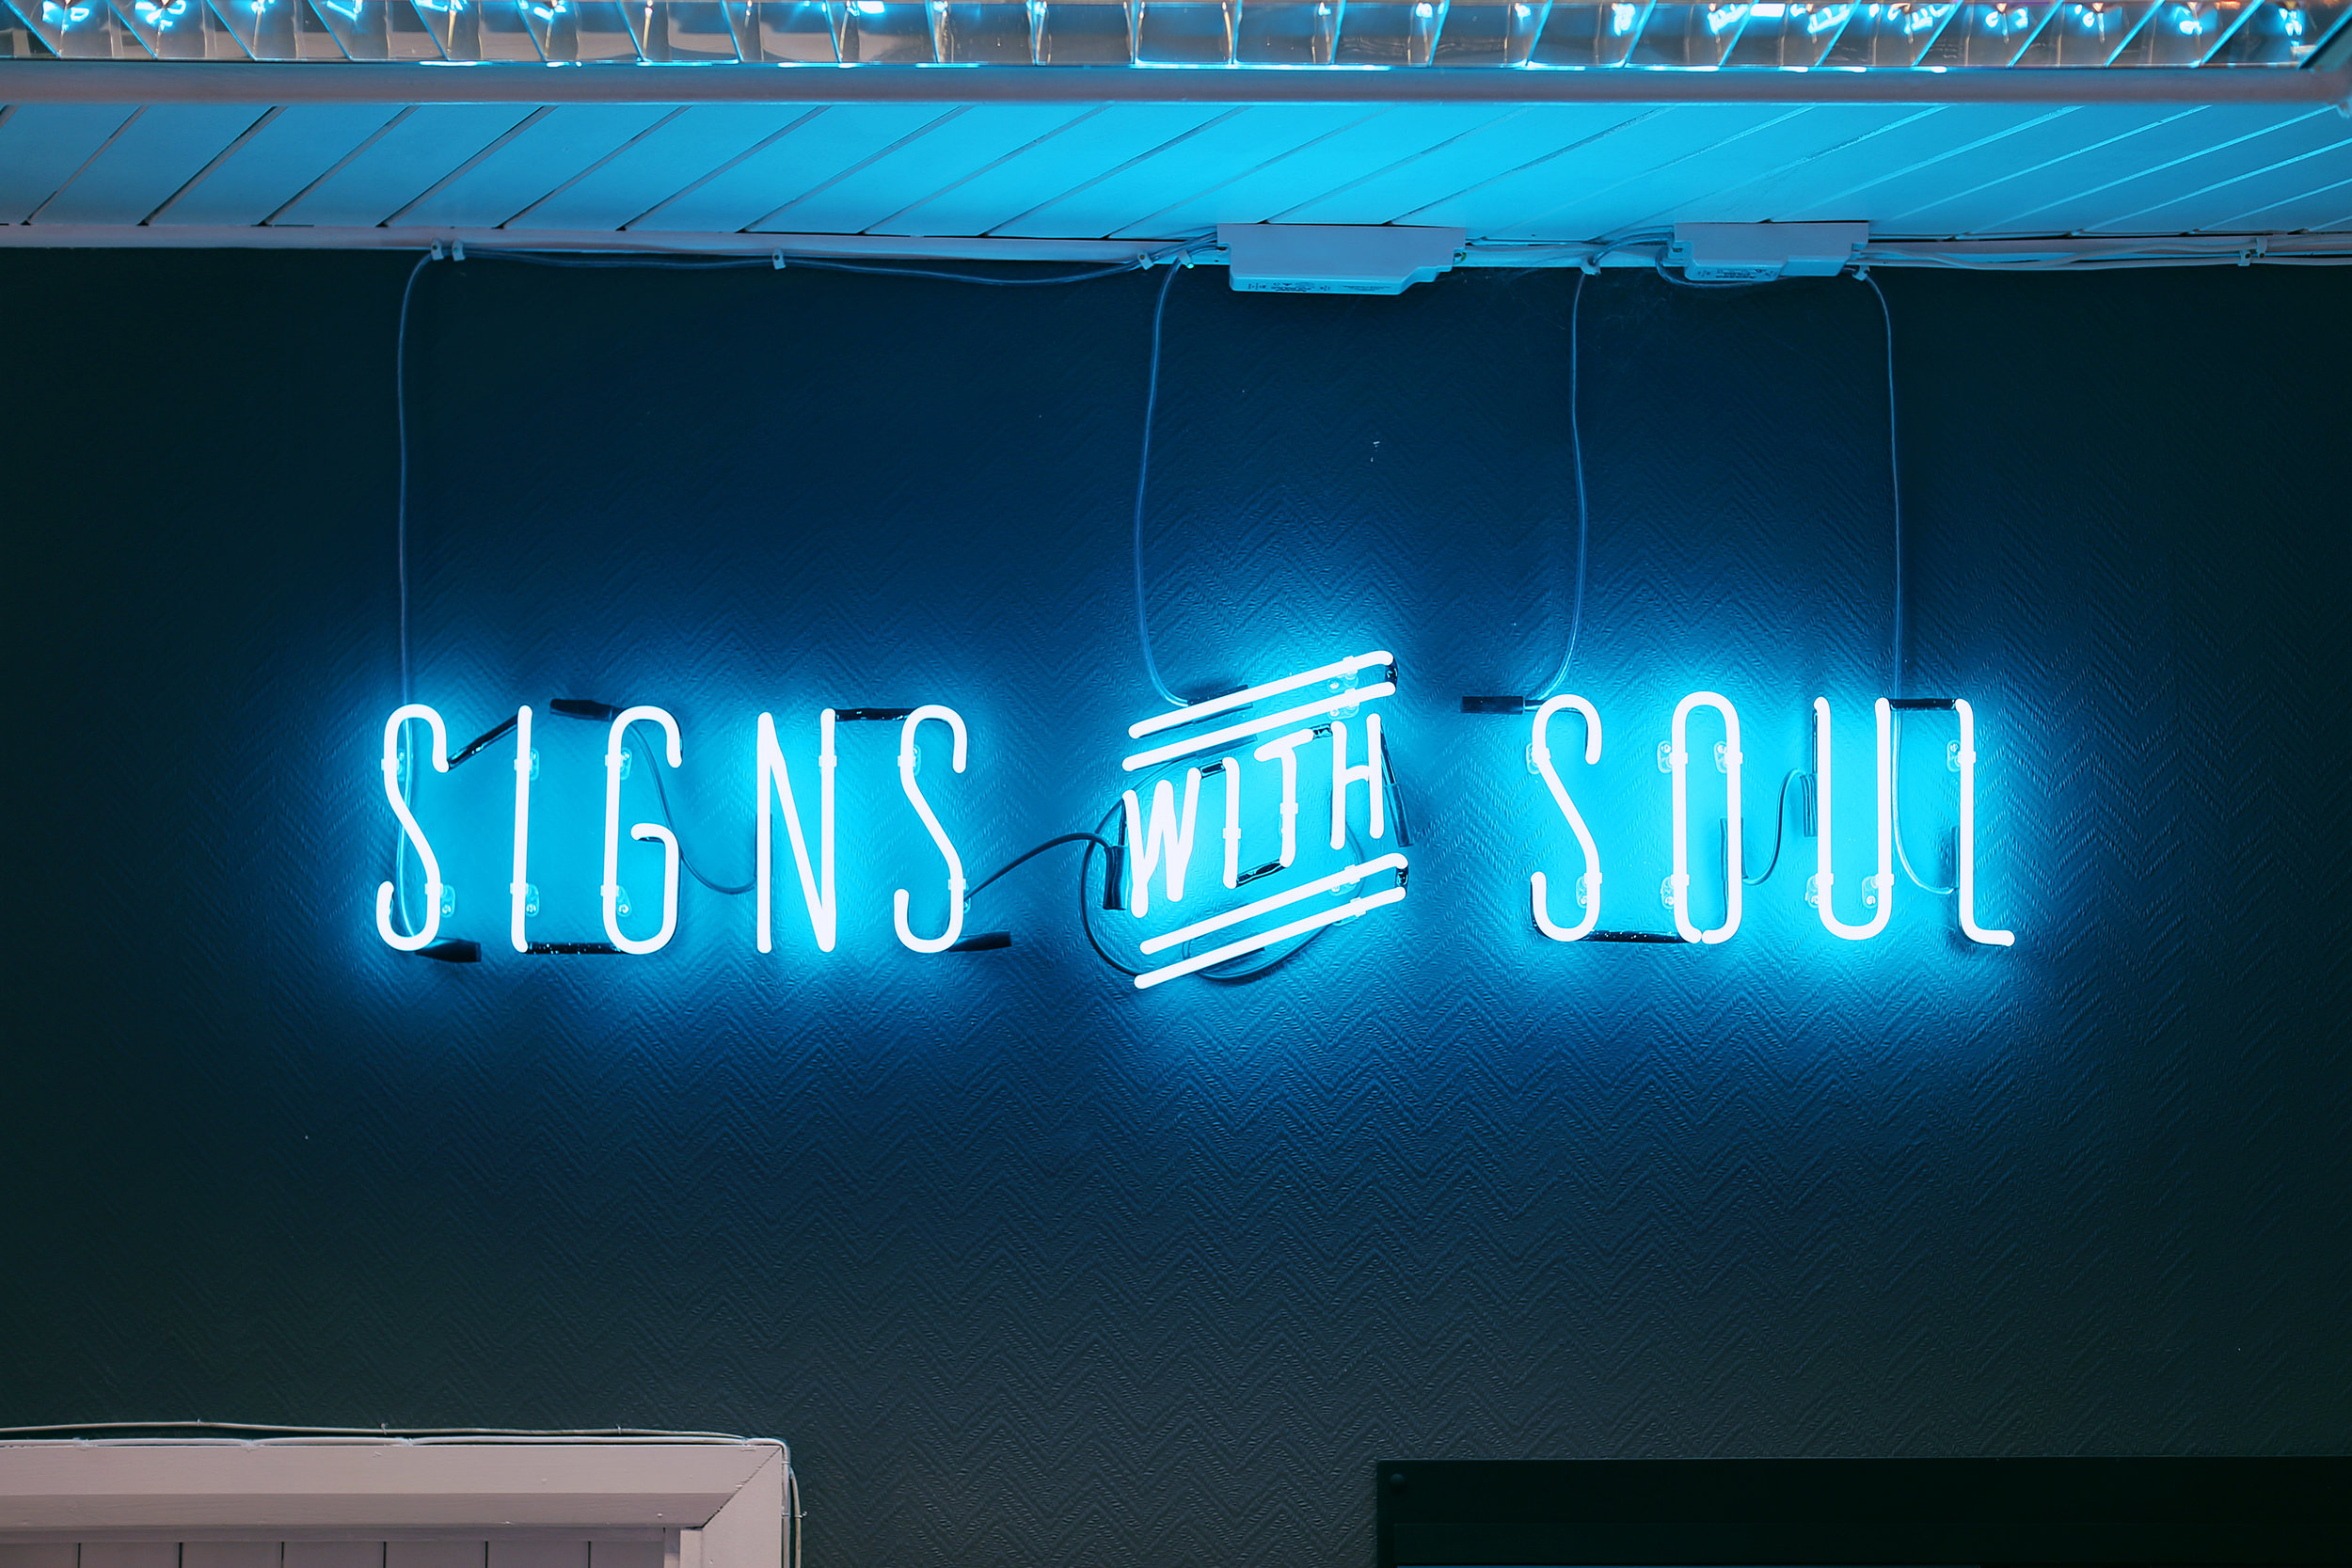 Goodwin_SignsWithSoul_Neon.jpg